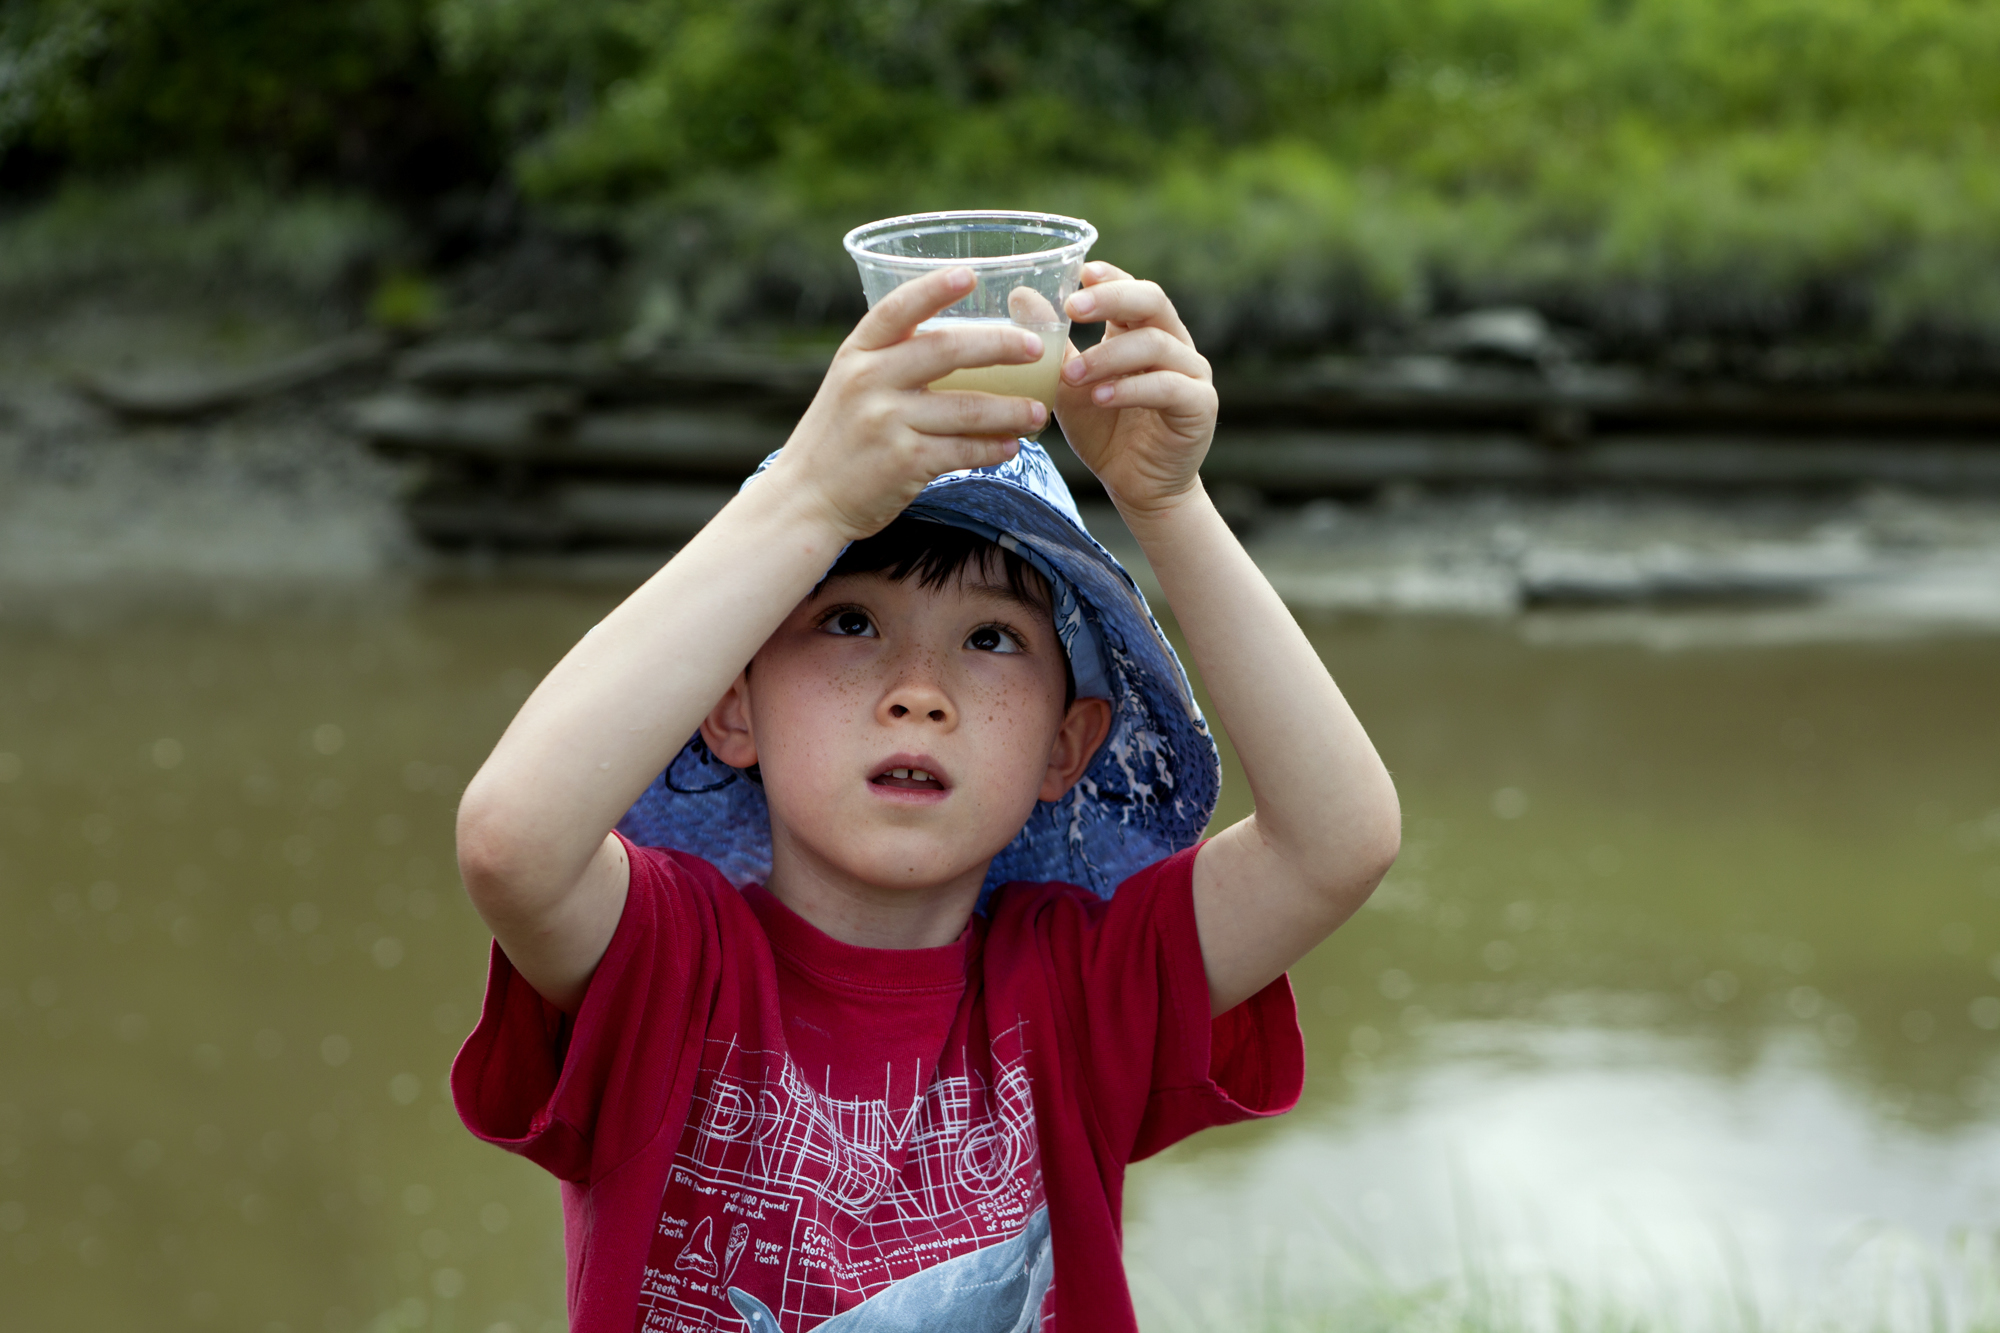 Maine Audubon camper Matthew investigates a water sample from the Harraseeket River during a field trip to Mast Landing Audubon Sanctuary in Freeport, Maine on June 28.